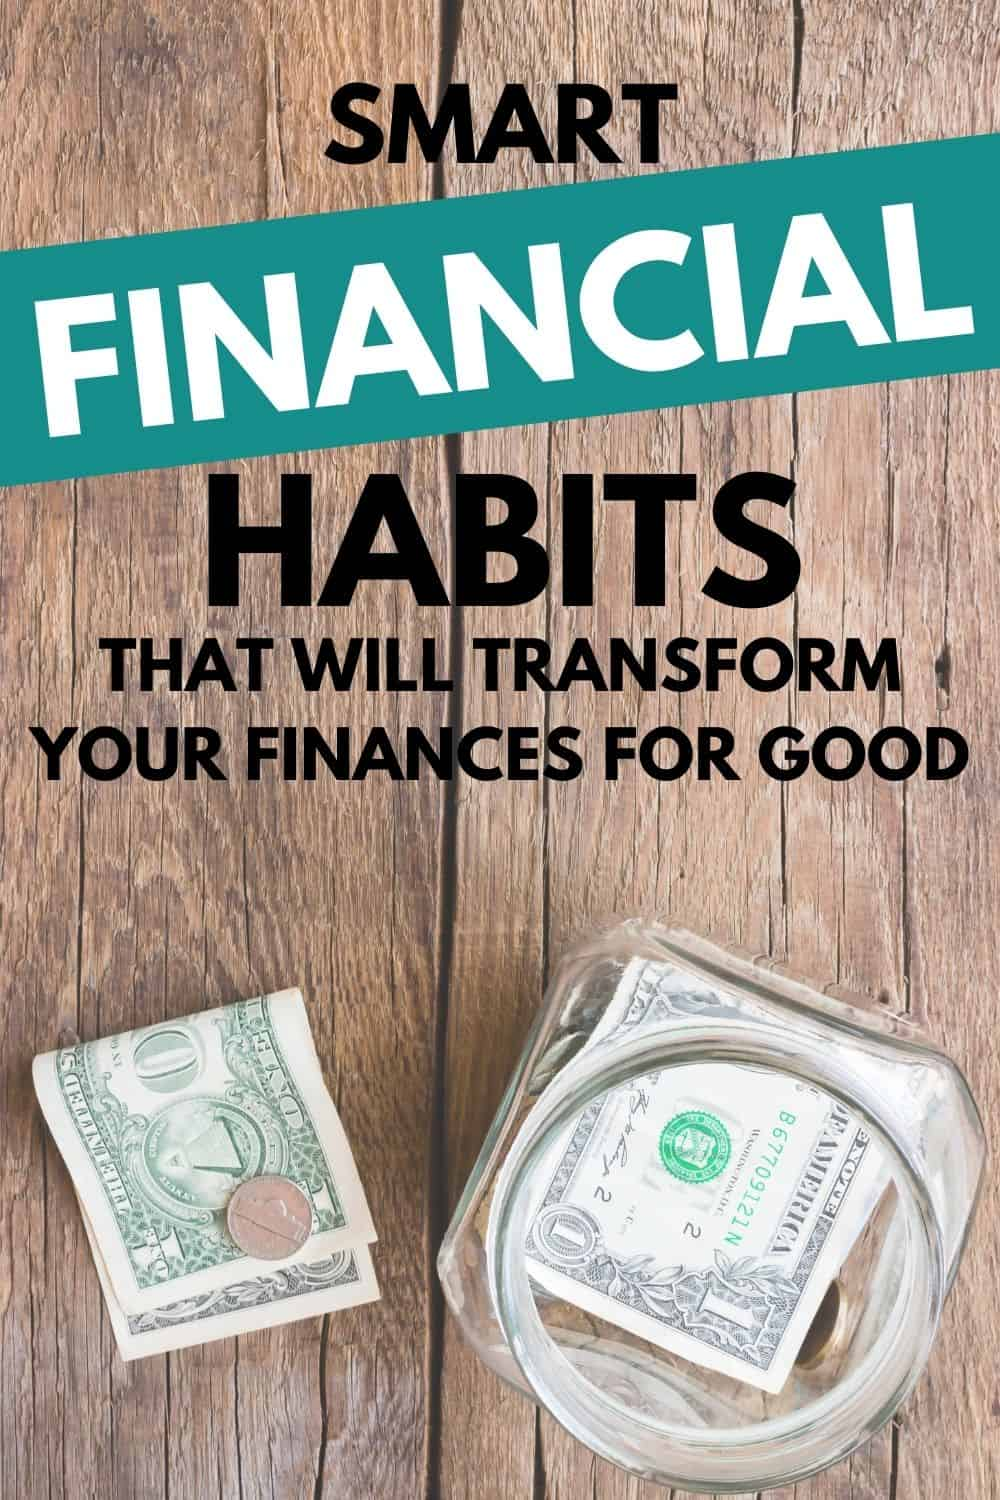 As you will see, these smart financial habits are easy ways to get back on track so you can start enjoyingyour financial freedom!